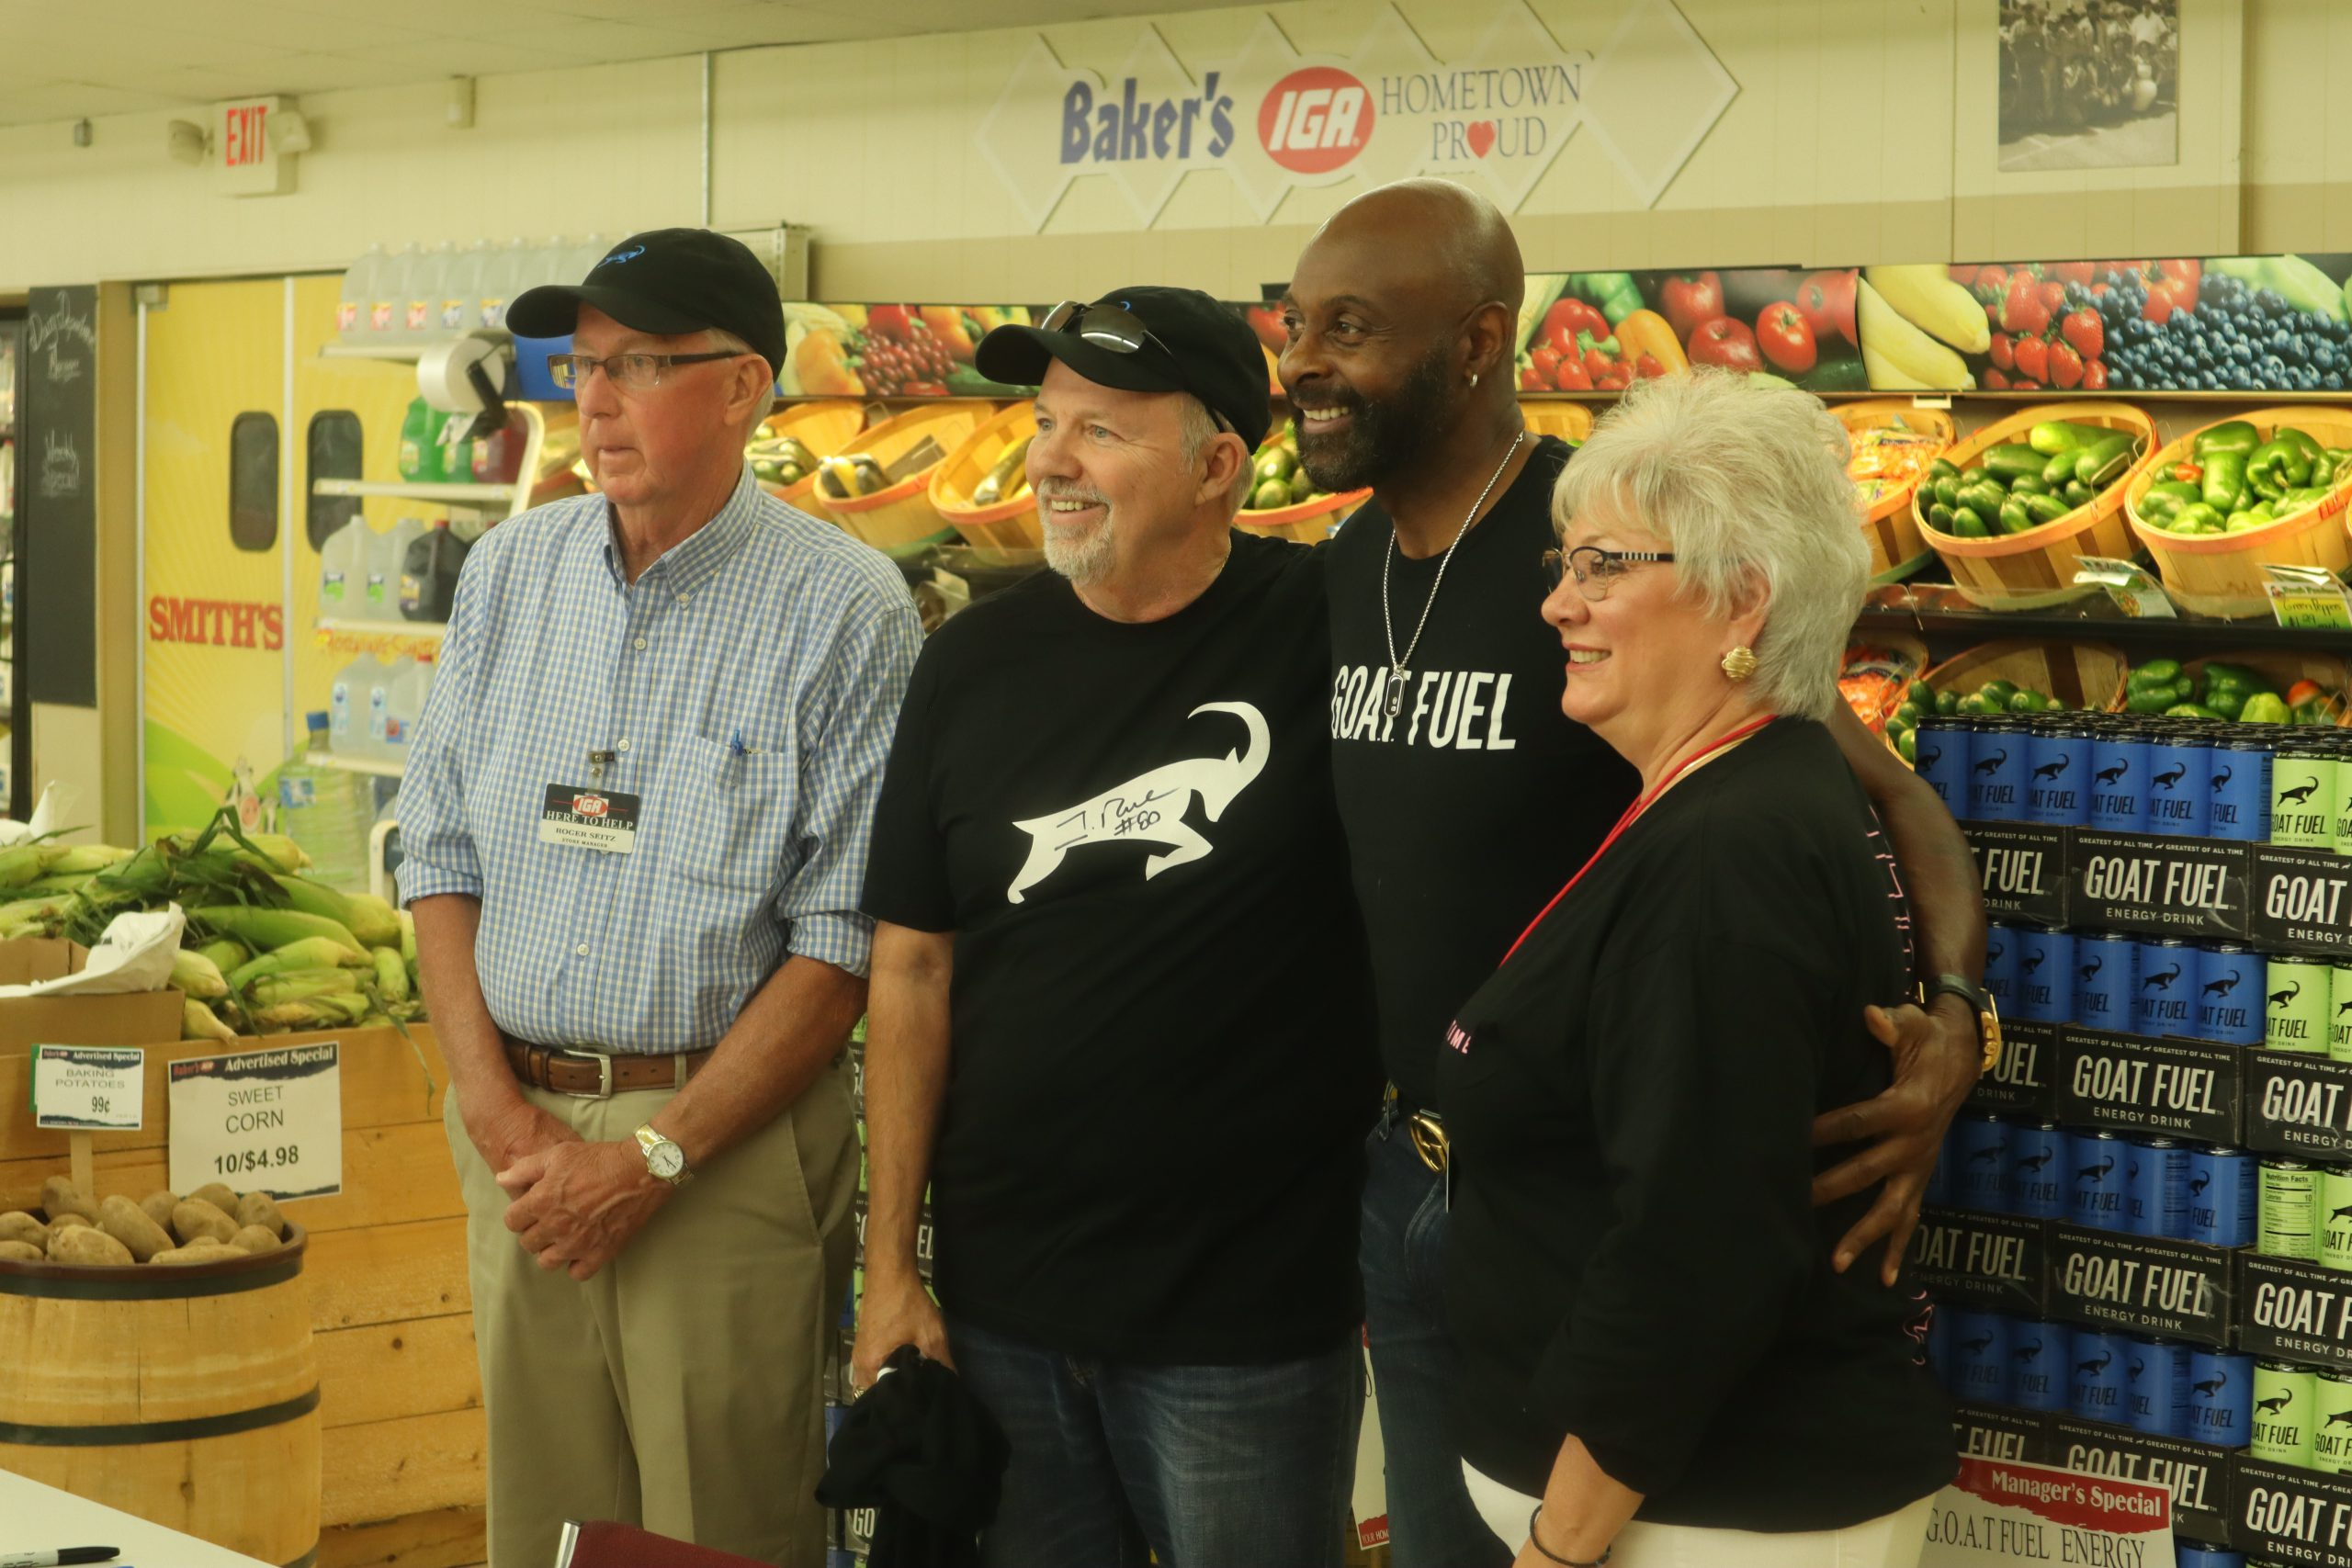 Former NFL superstar Jerry Rice poses with Baker's IGA supermarket staff and management in Newcomerstown, Ohio on Friday, September 3.